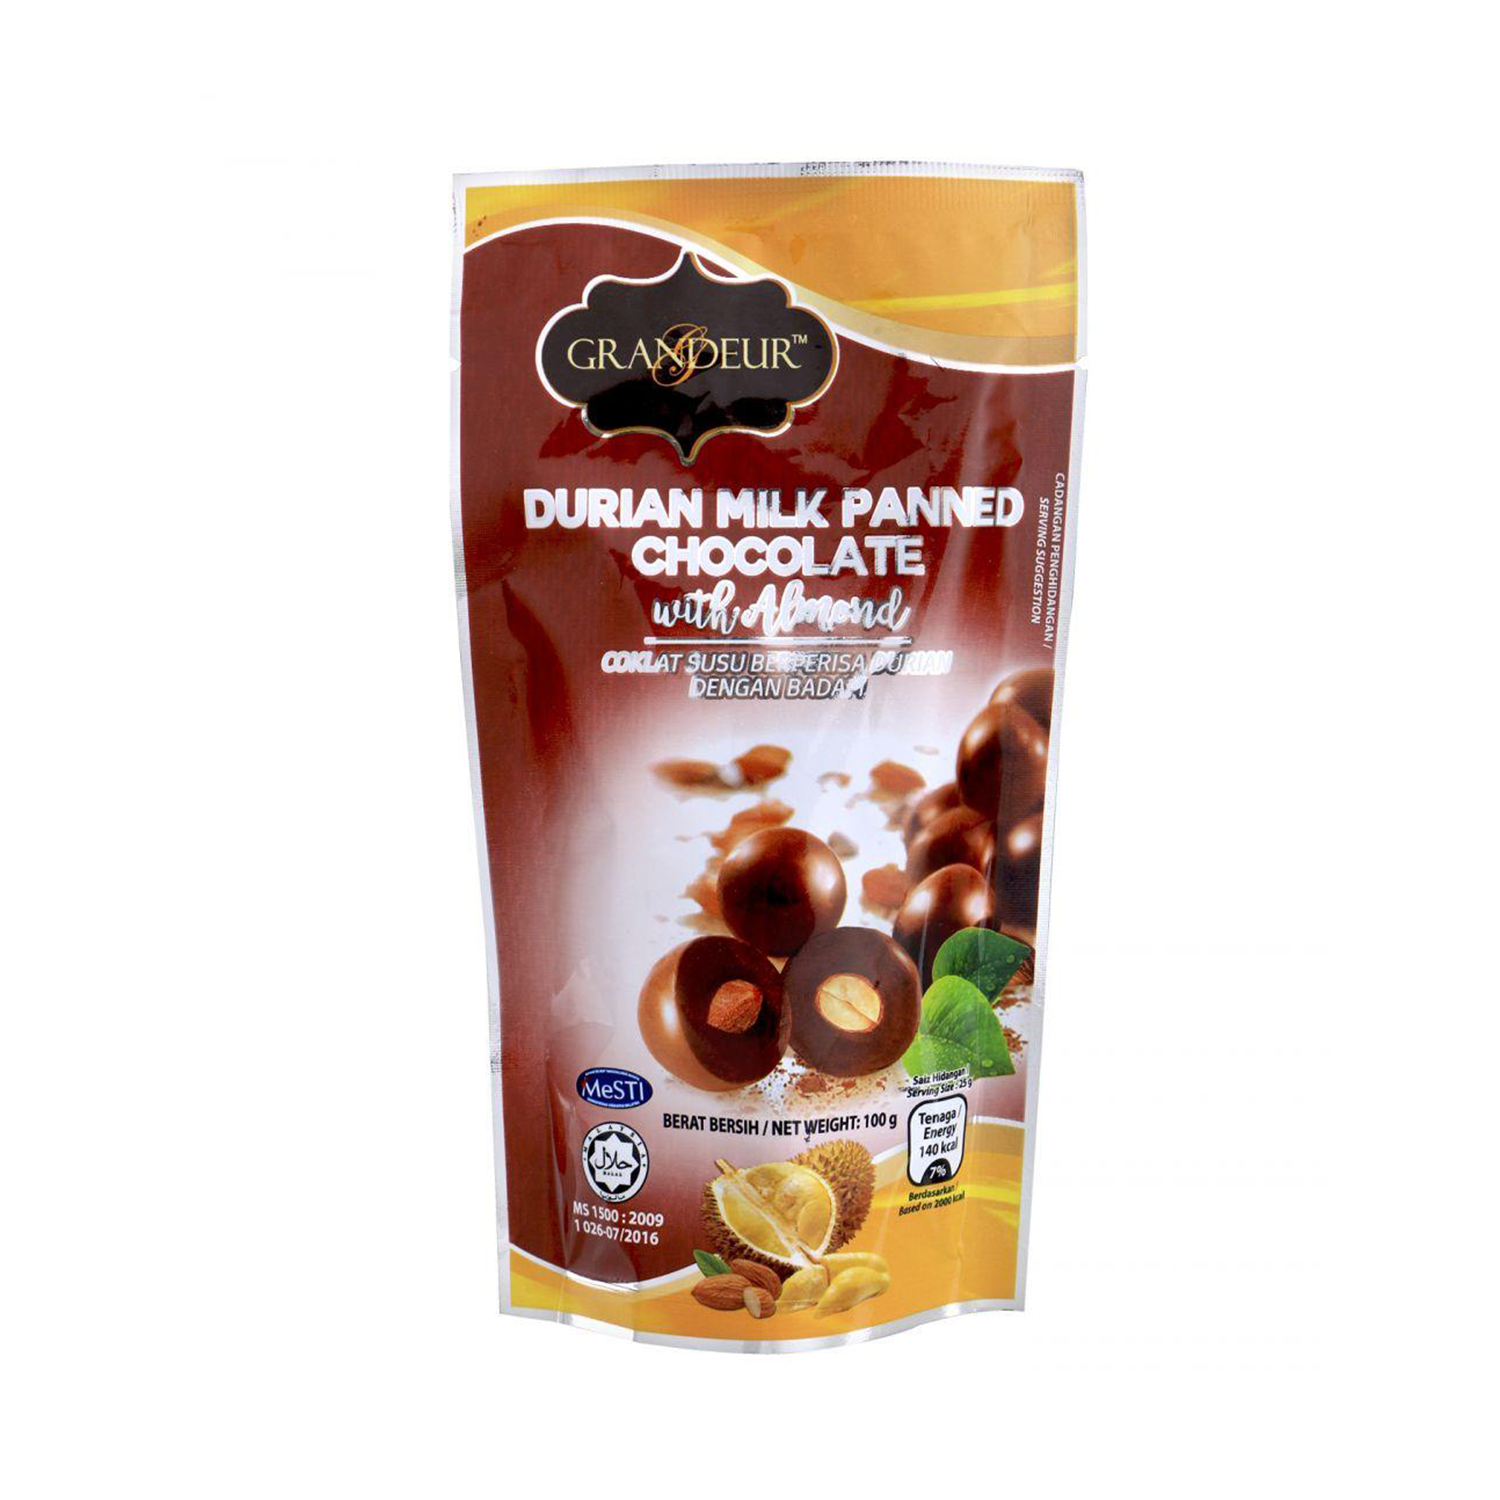 Grandeur Durian Milk Panned Chocolate With Almond 100G